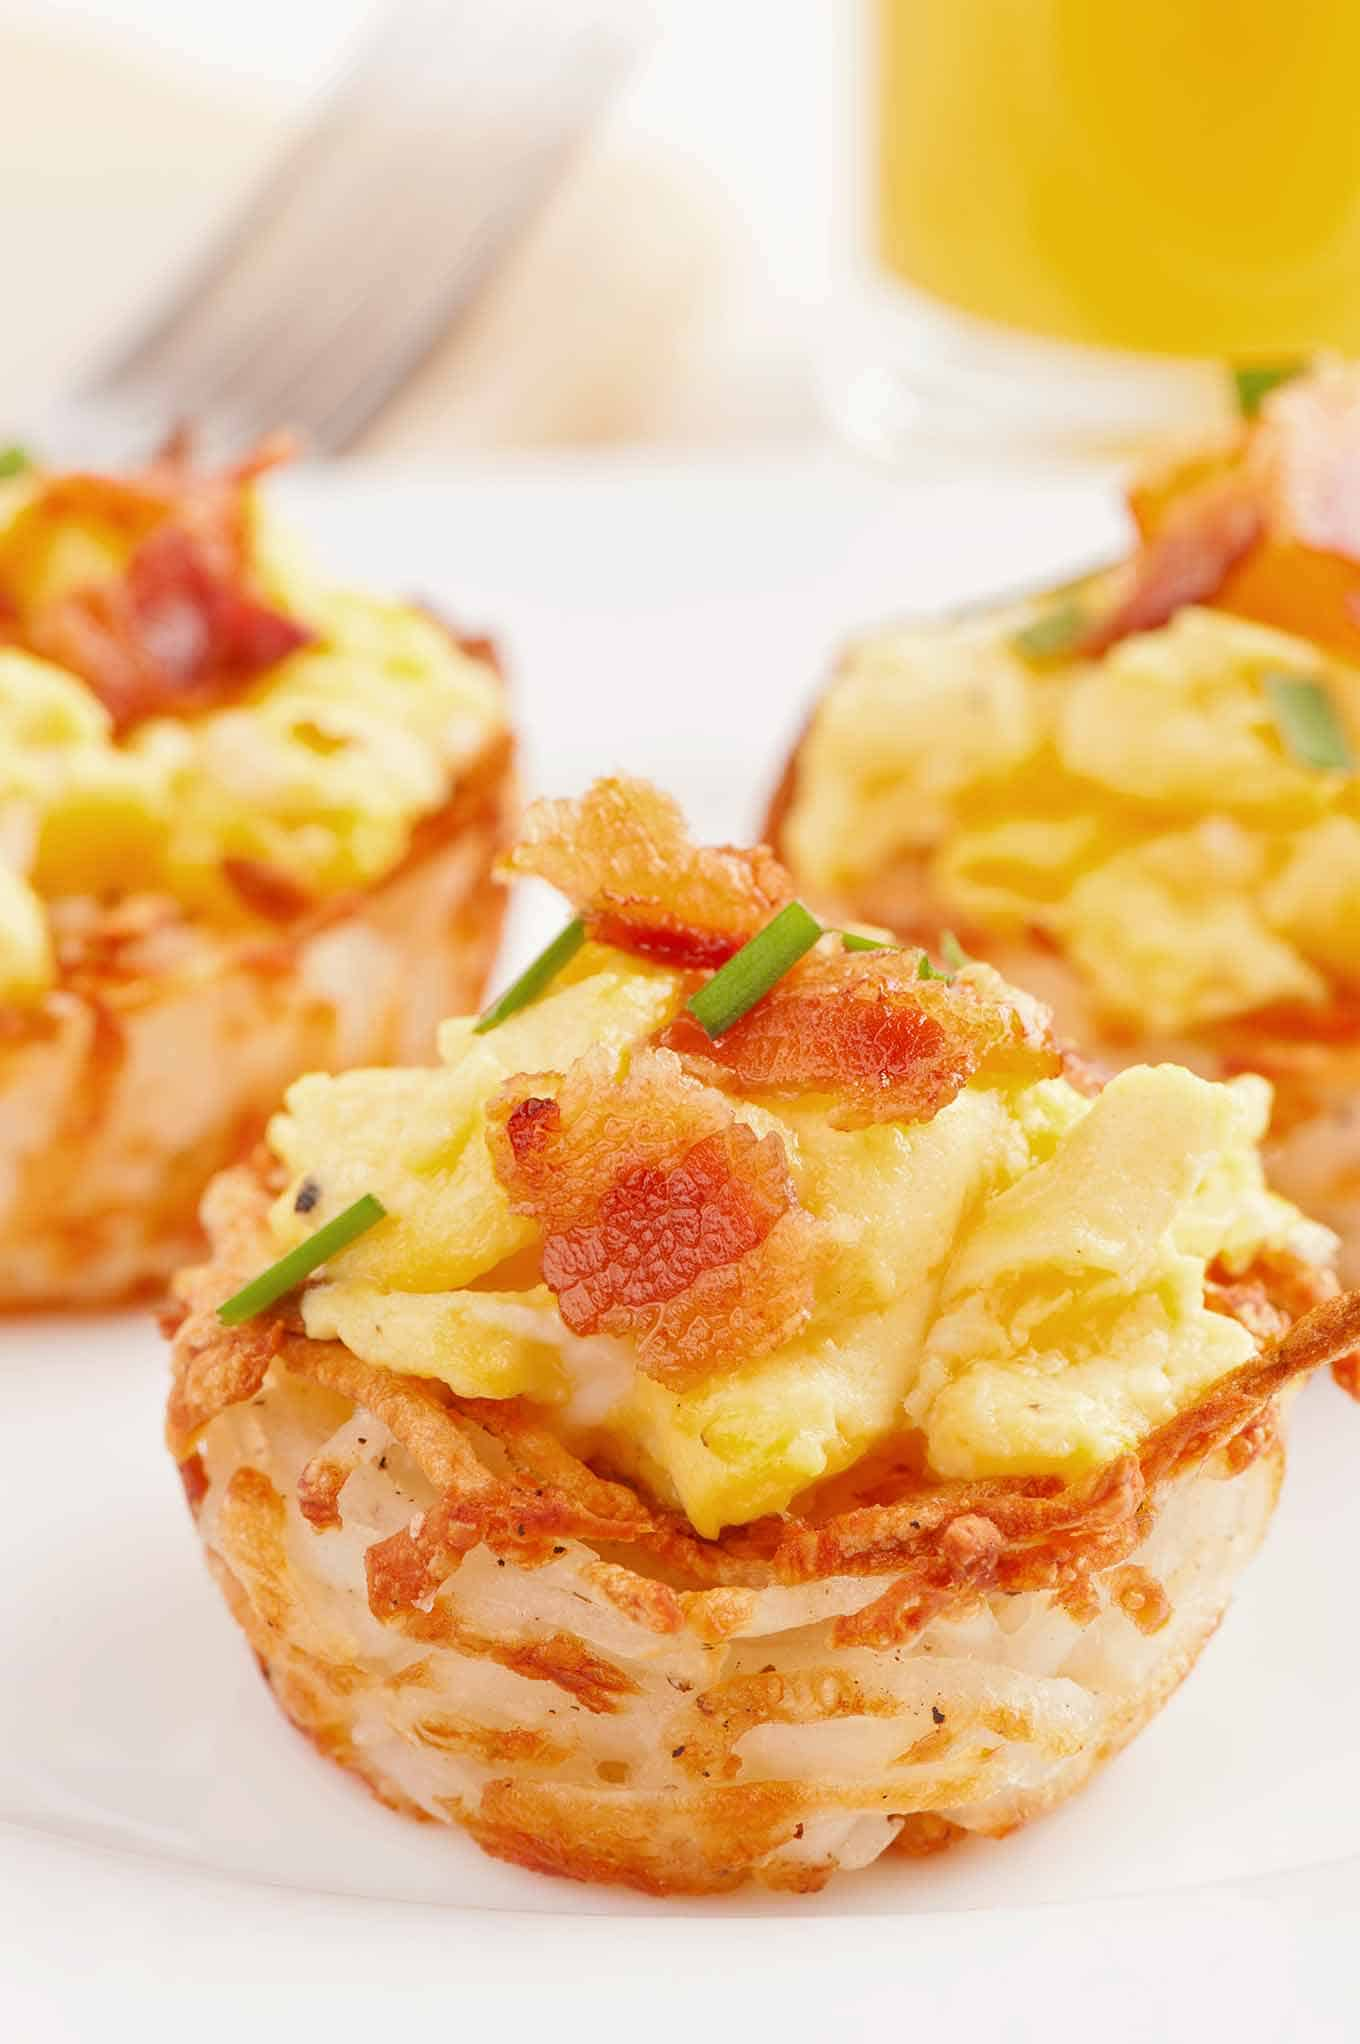 Scrambled eggs inside hash browned potato cup topped with bacon and garnished with chives.